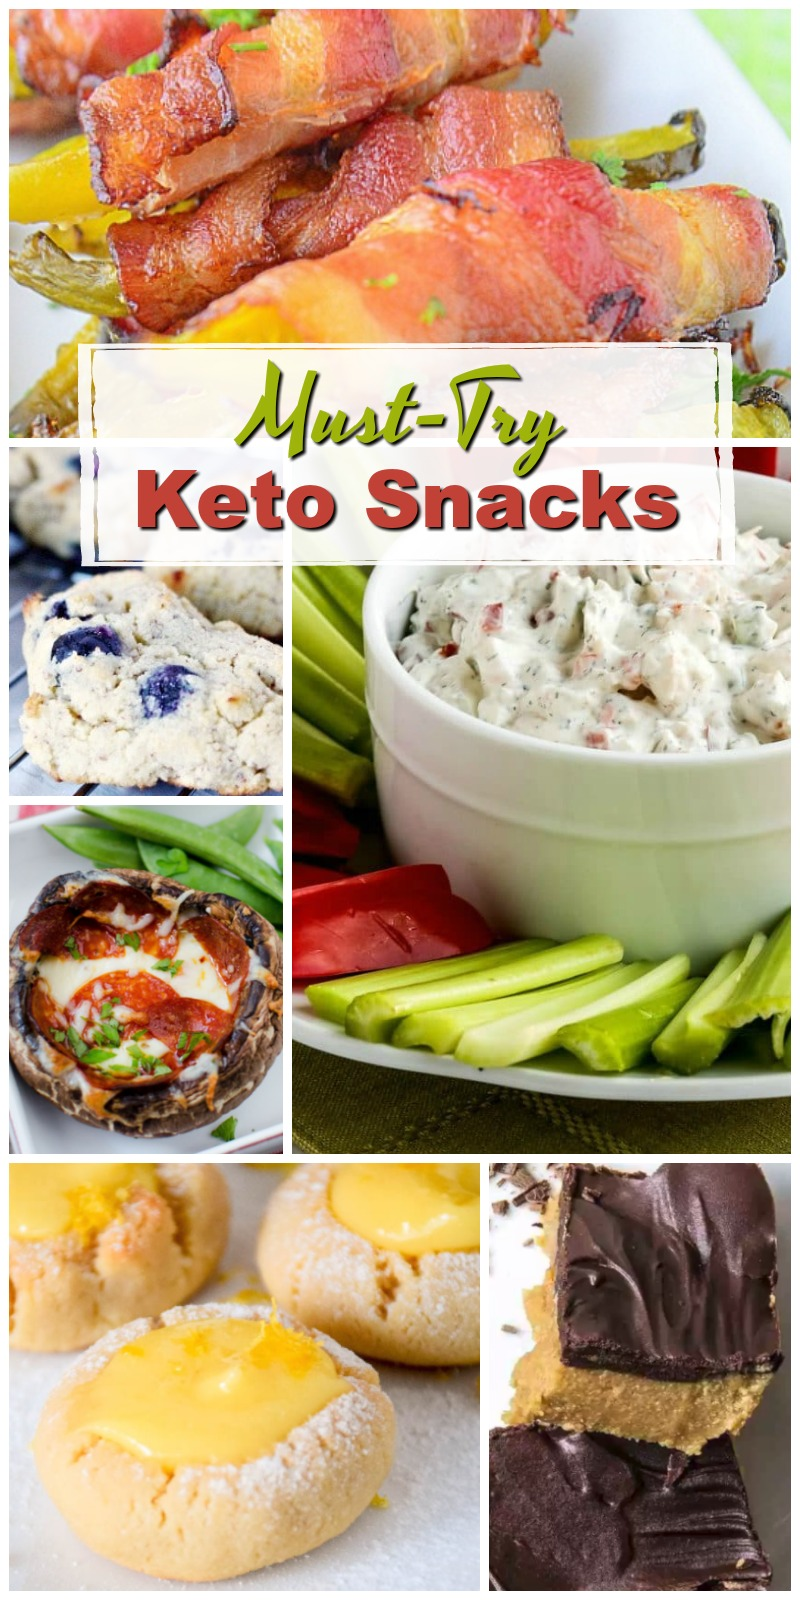 These Must-Try Keto Snacks are simple, delicious and Keto-Friendly! If you're looking for some simple Keto recipes, you've arrived at the right place!